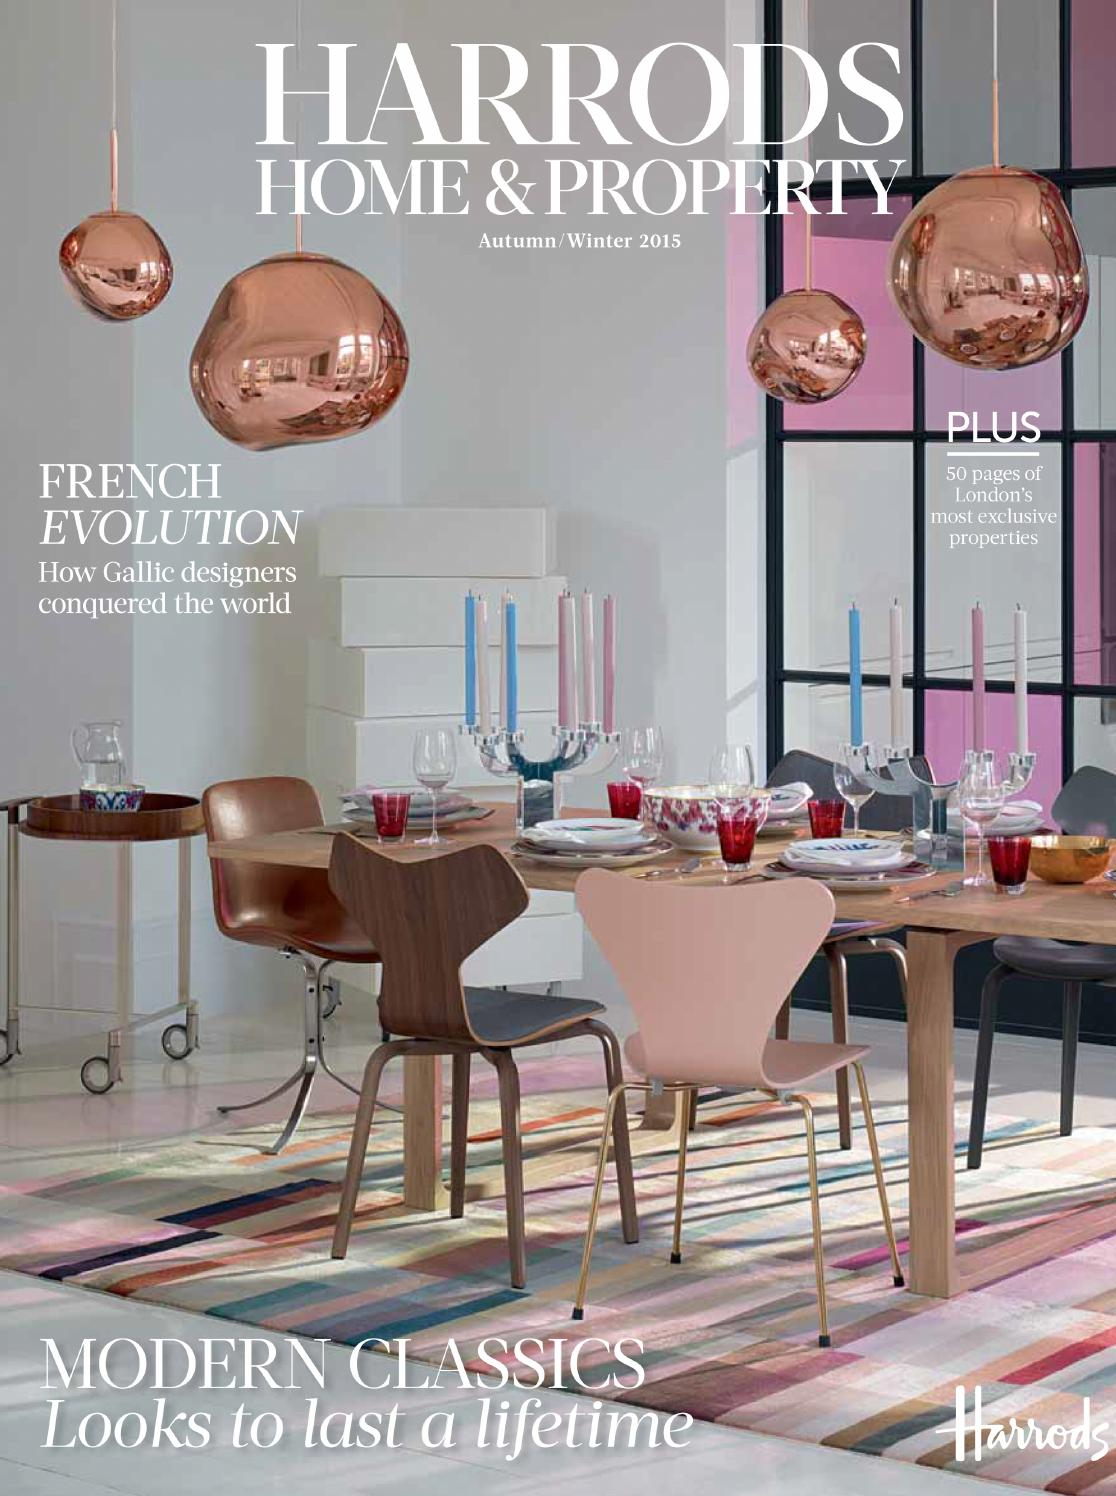 Harrods home property aw15 by harrods online issuu